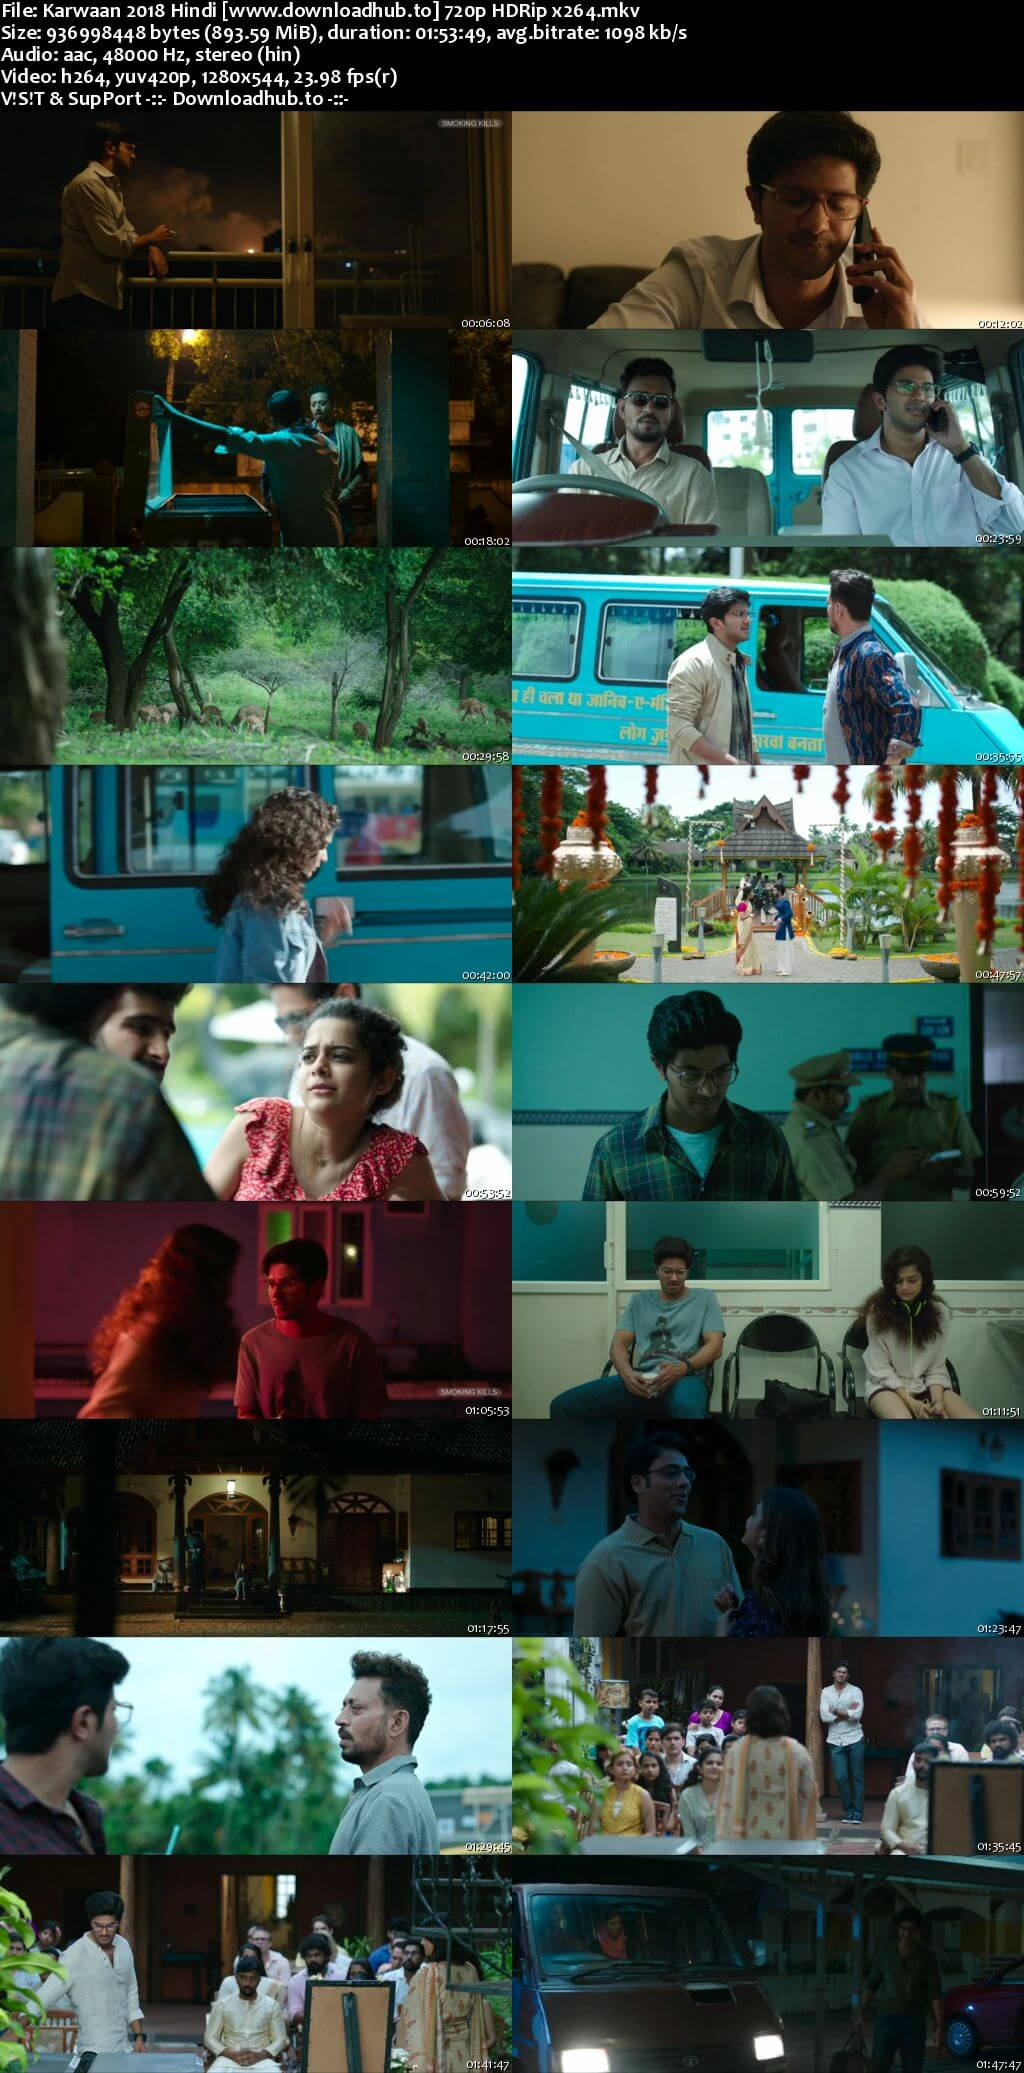 Karwaan 2018 Hindi 720p HDRip